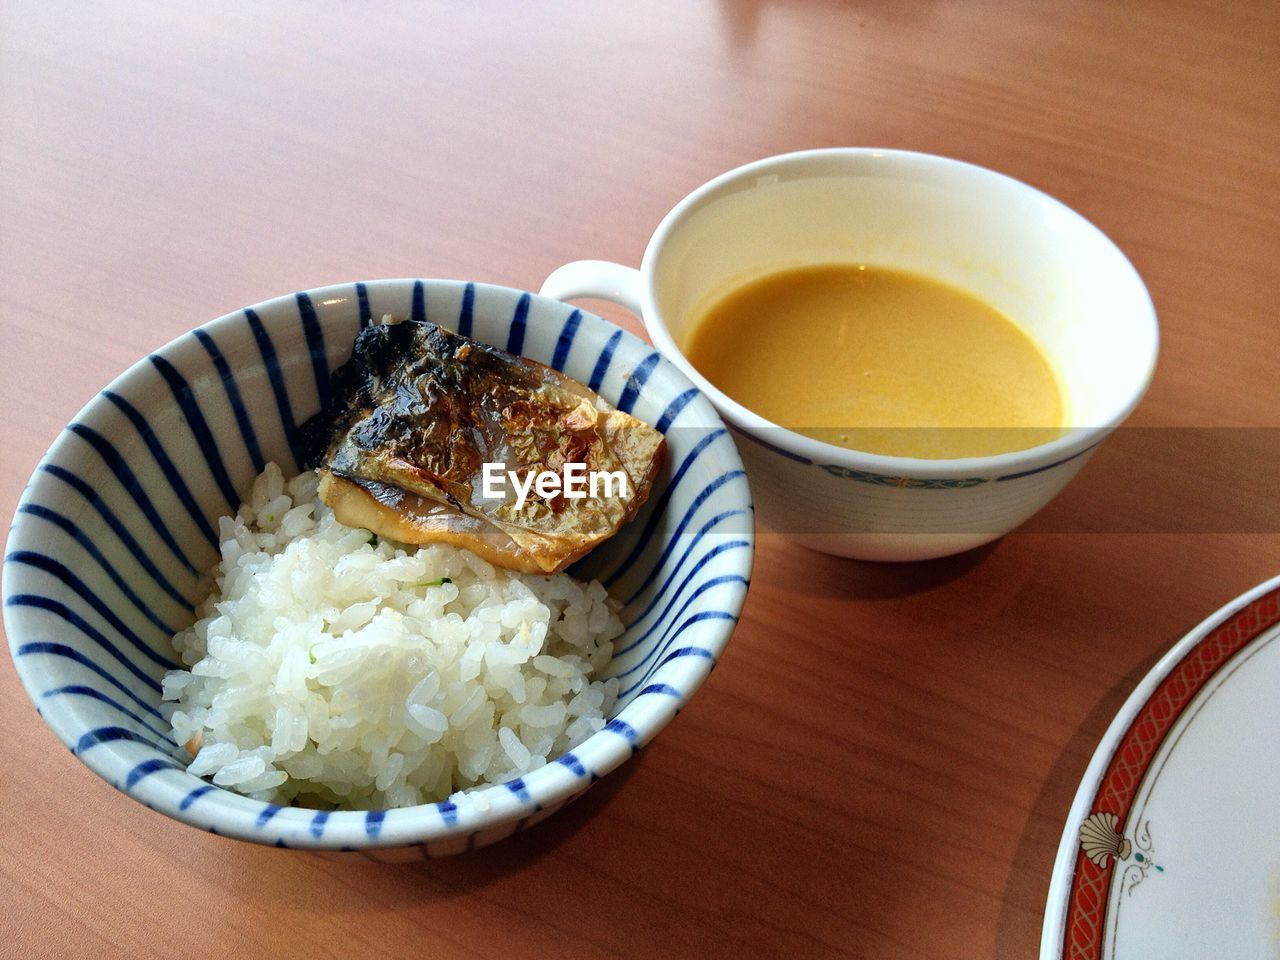 High Angle View Of Meal Served On Wooden Table